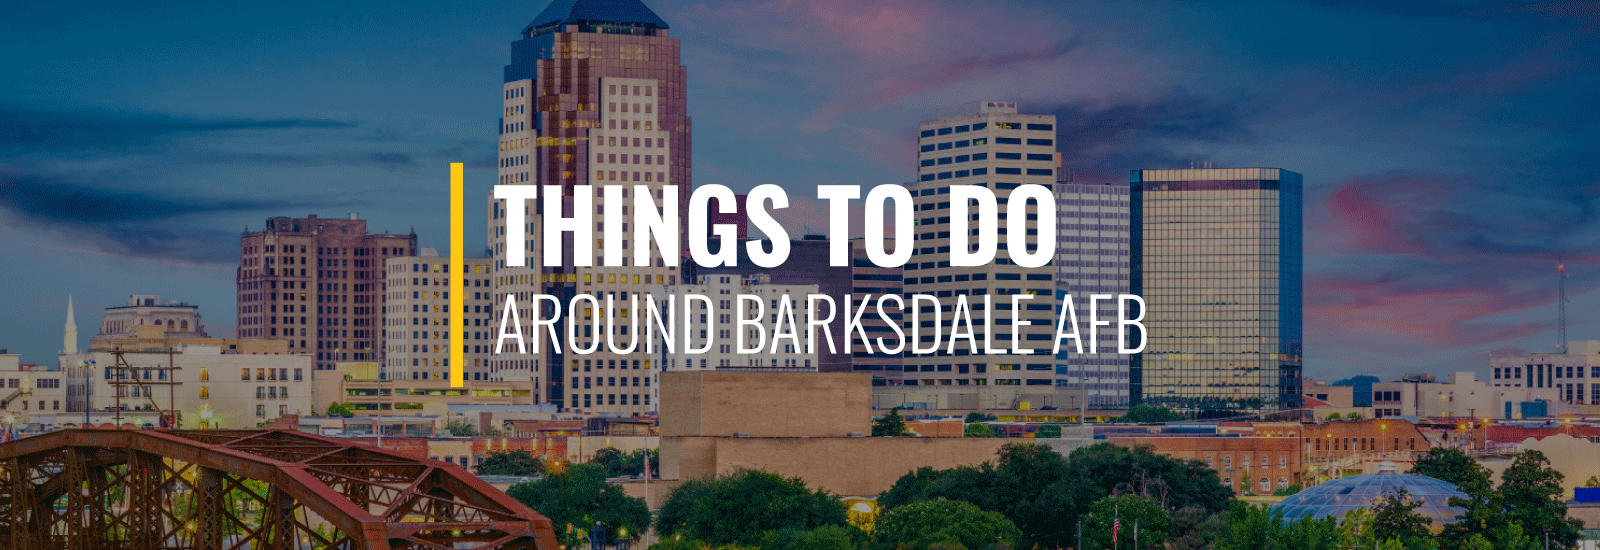 Things to Do Near Barksdale AFB